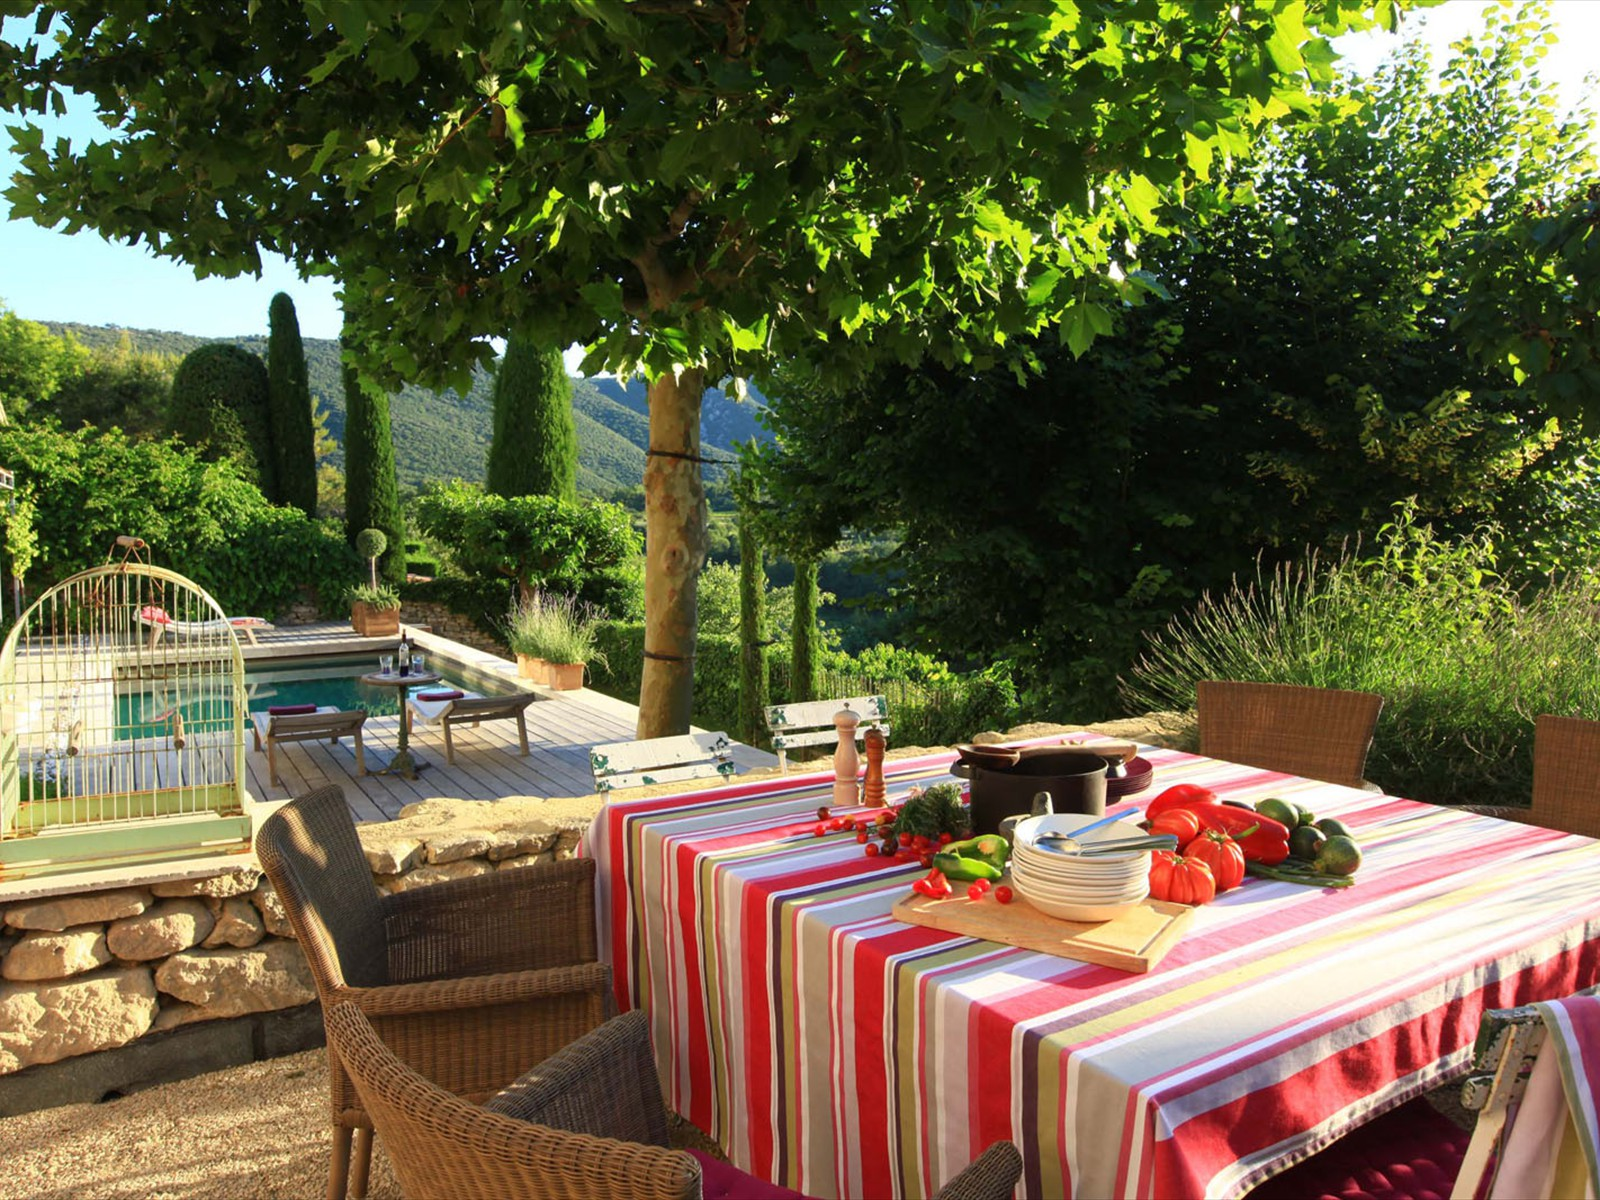 exclusive_rentals_provence_vacation_luxury_homes_holiday_rentals_mont_ventoux_luberon_20